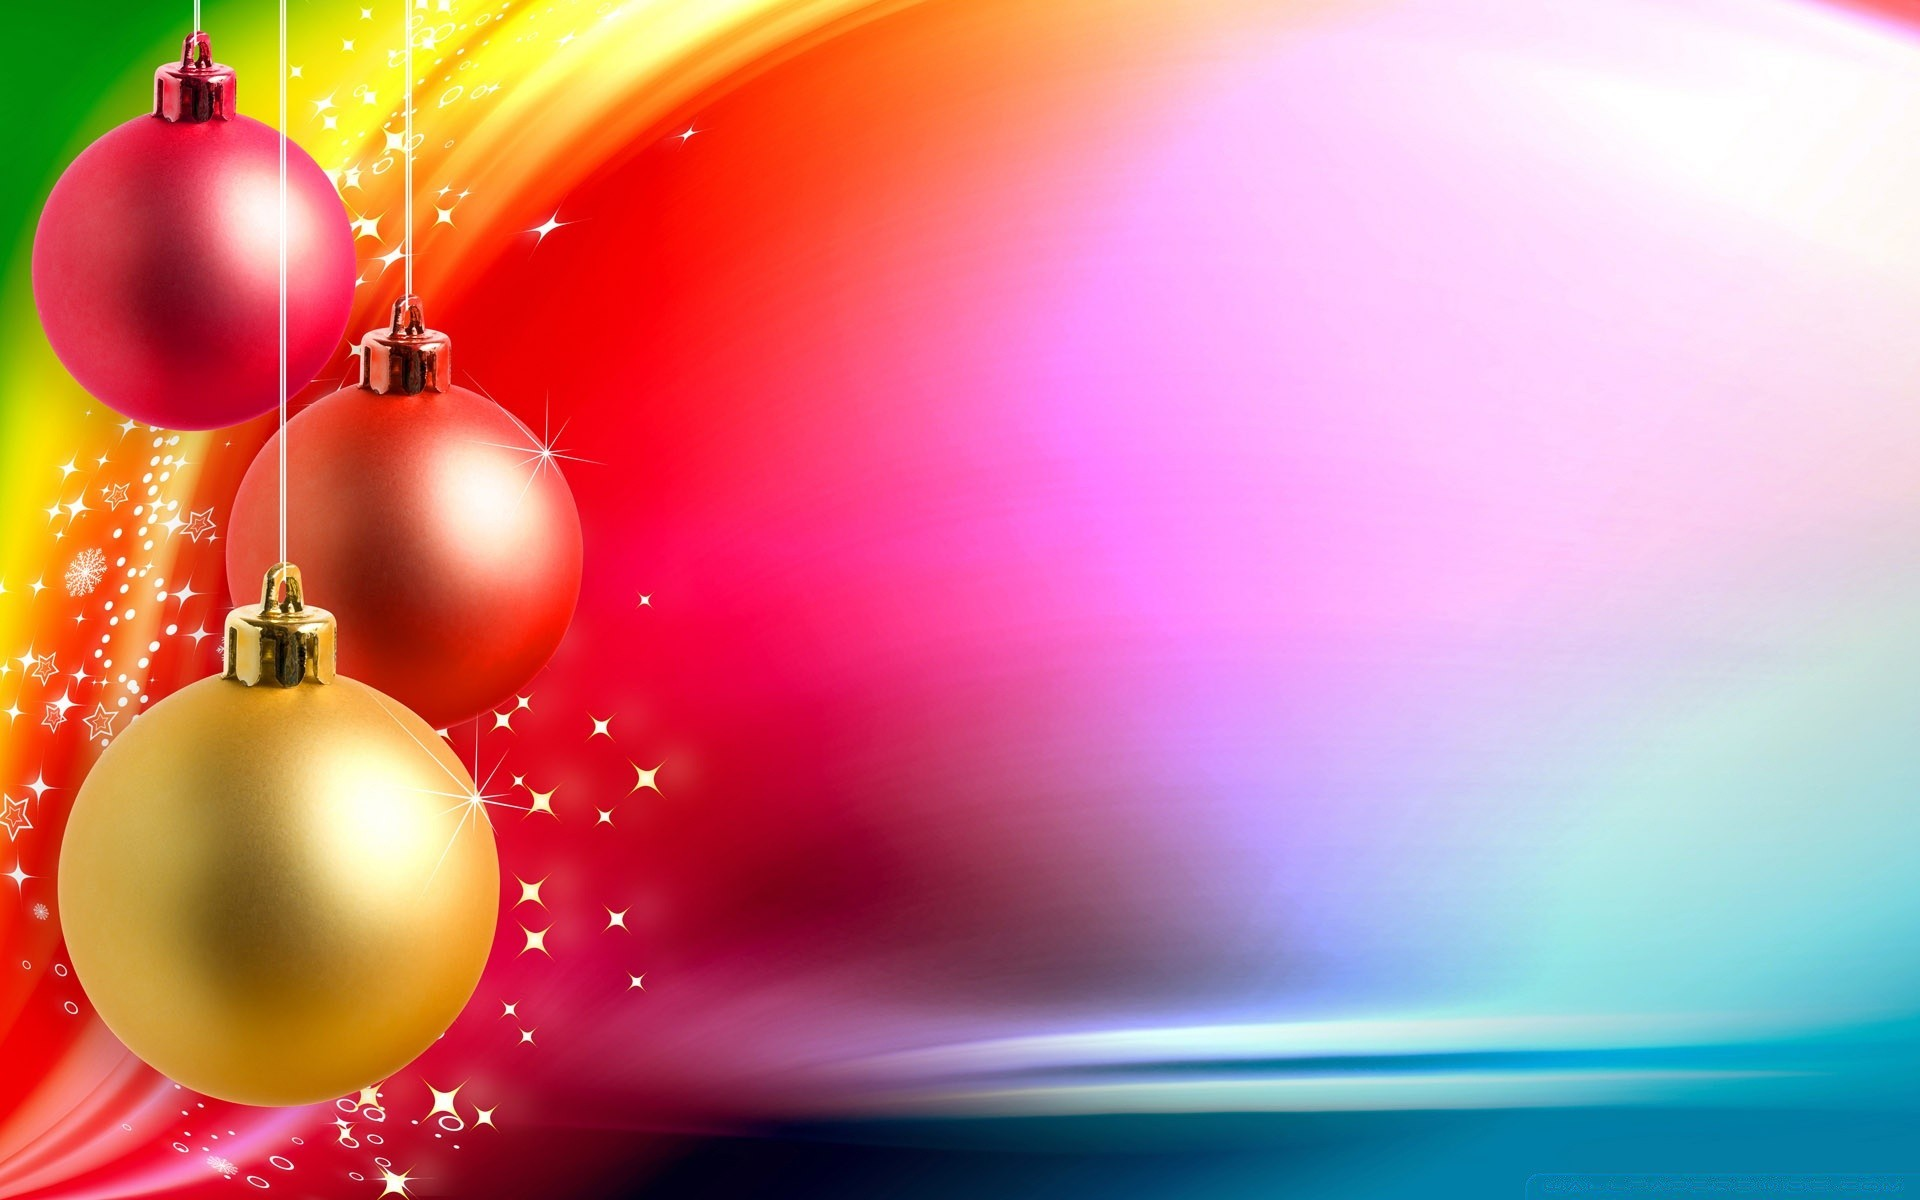 Colorful Christmas Background  iPhone wallpapers for free